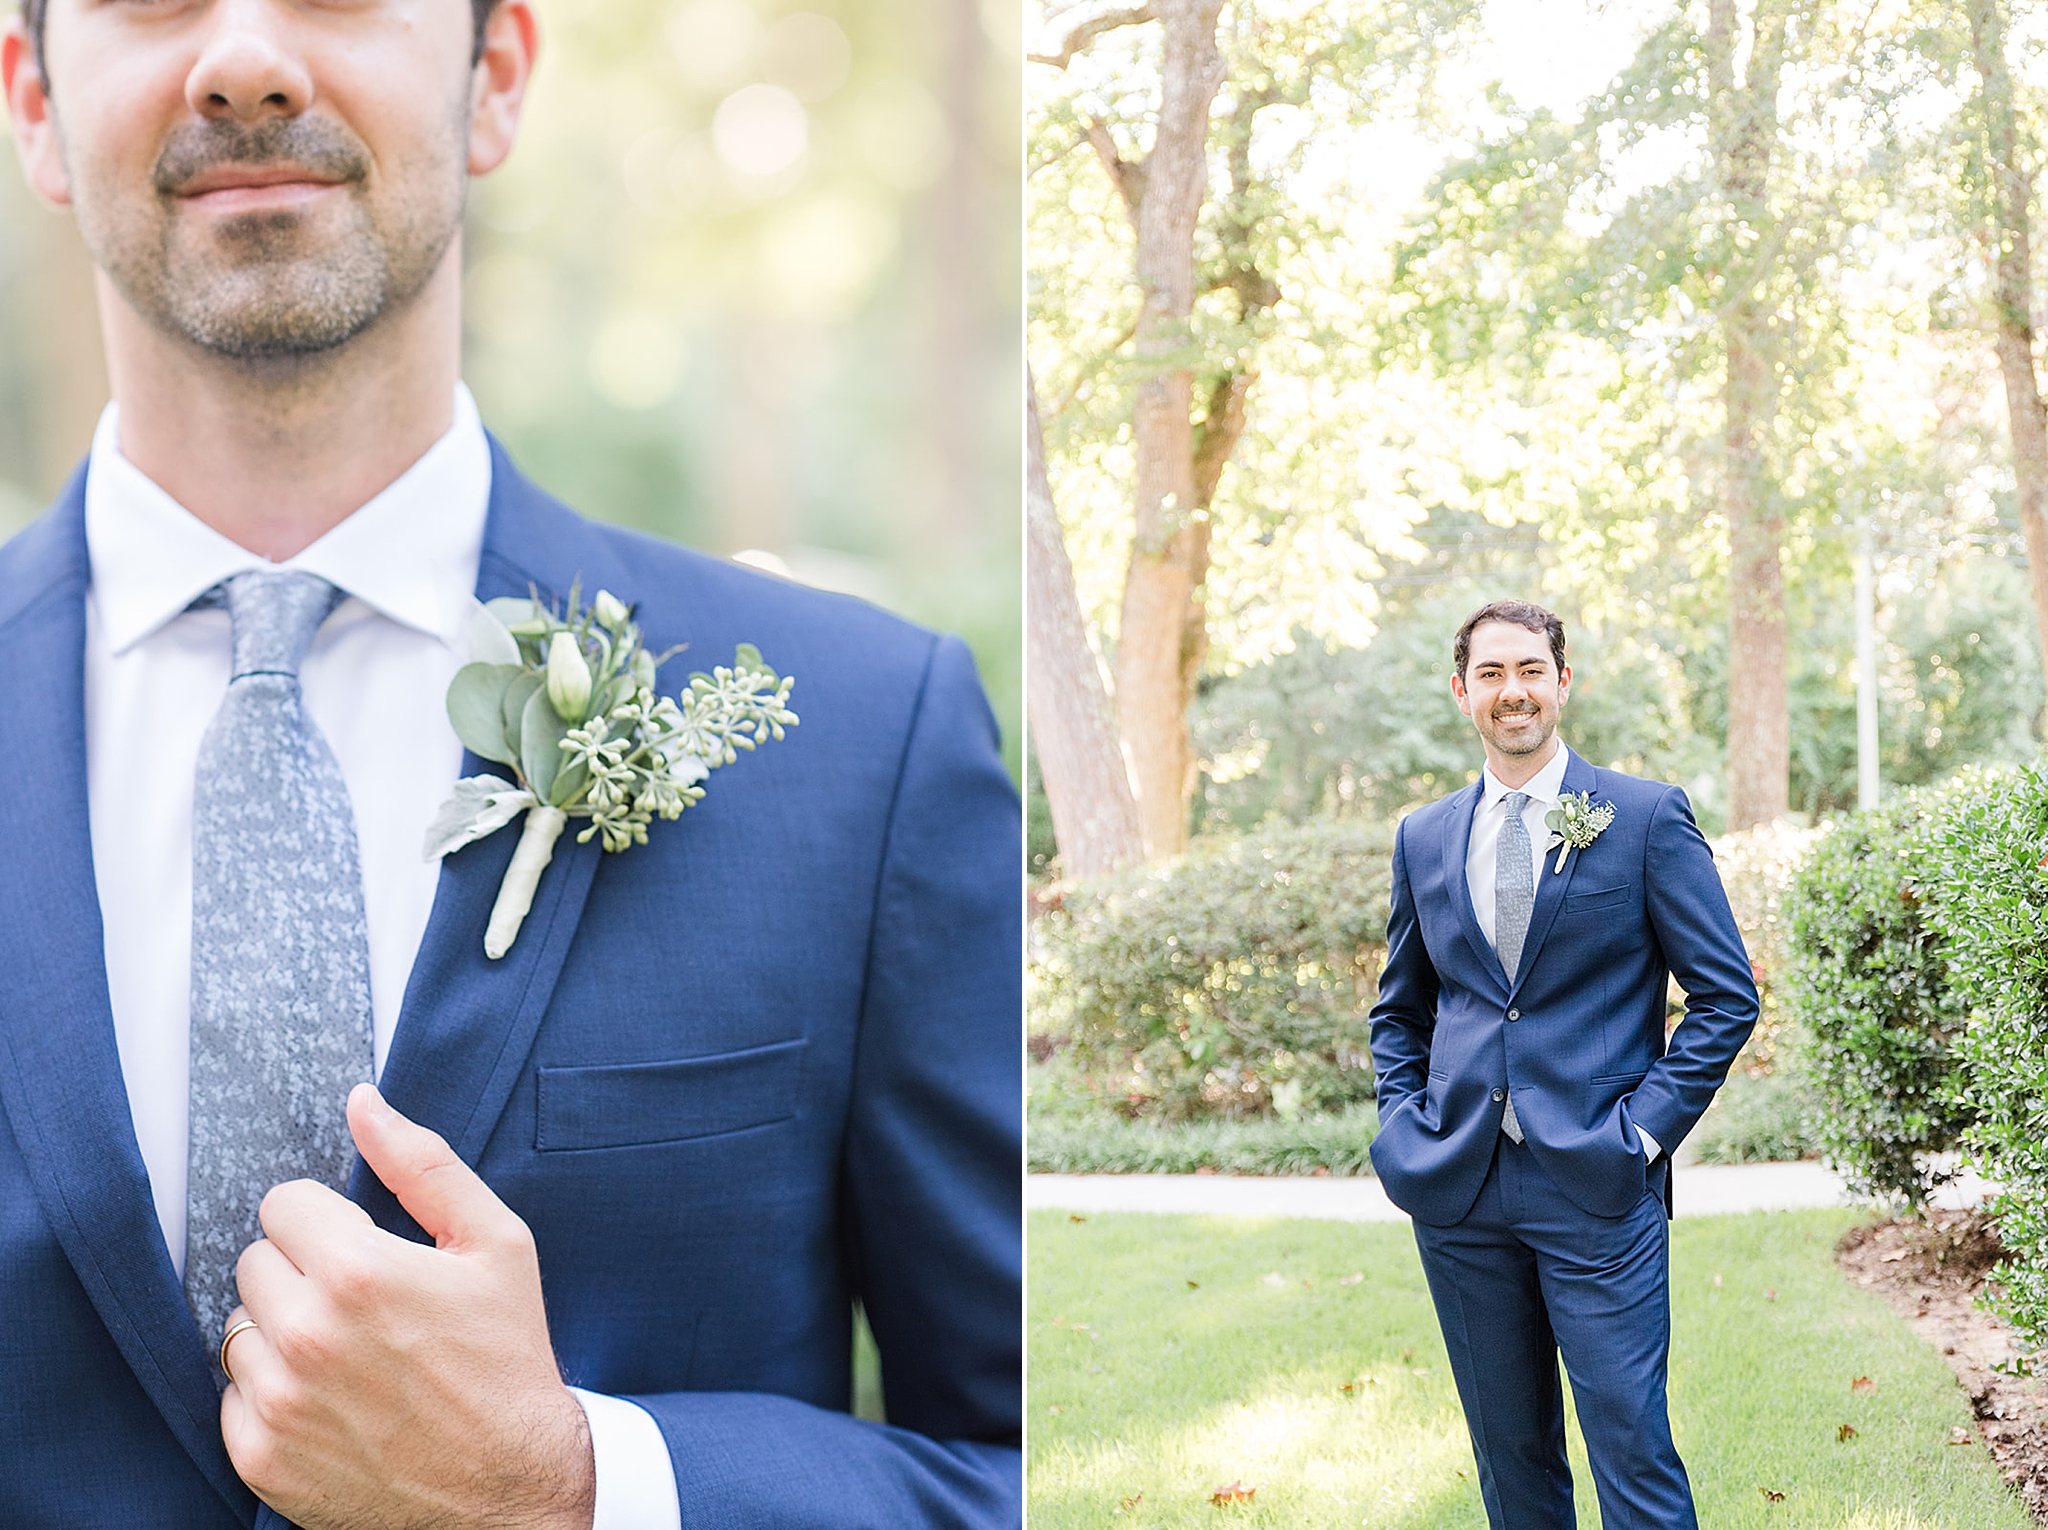 groom in navy suit with green boutonnière poses